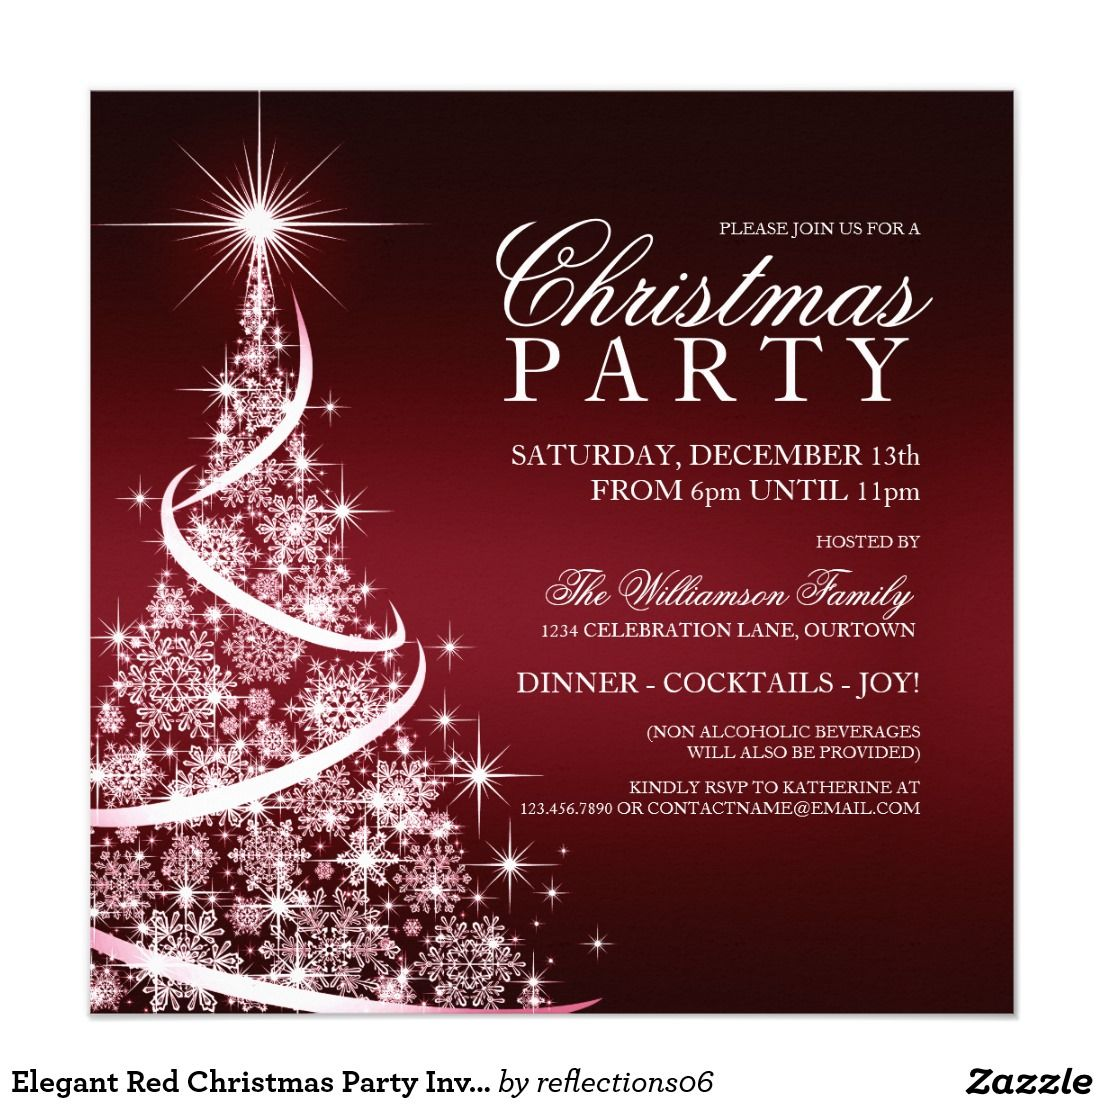 Elegant Red Christmas Party Invitation | Christmas Party Invitations ...